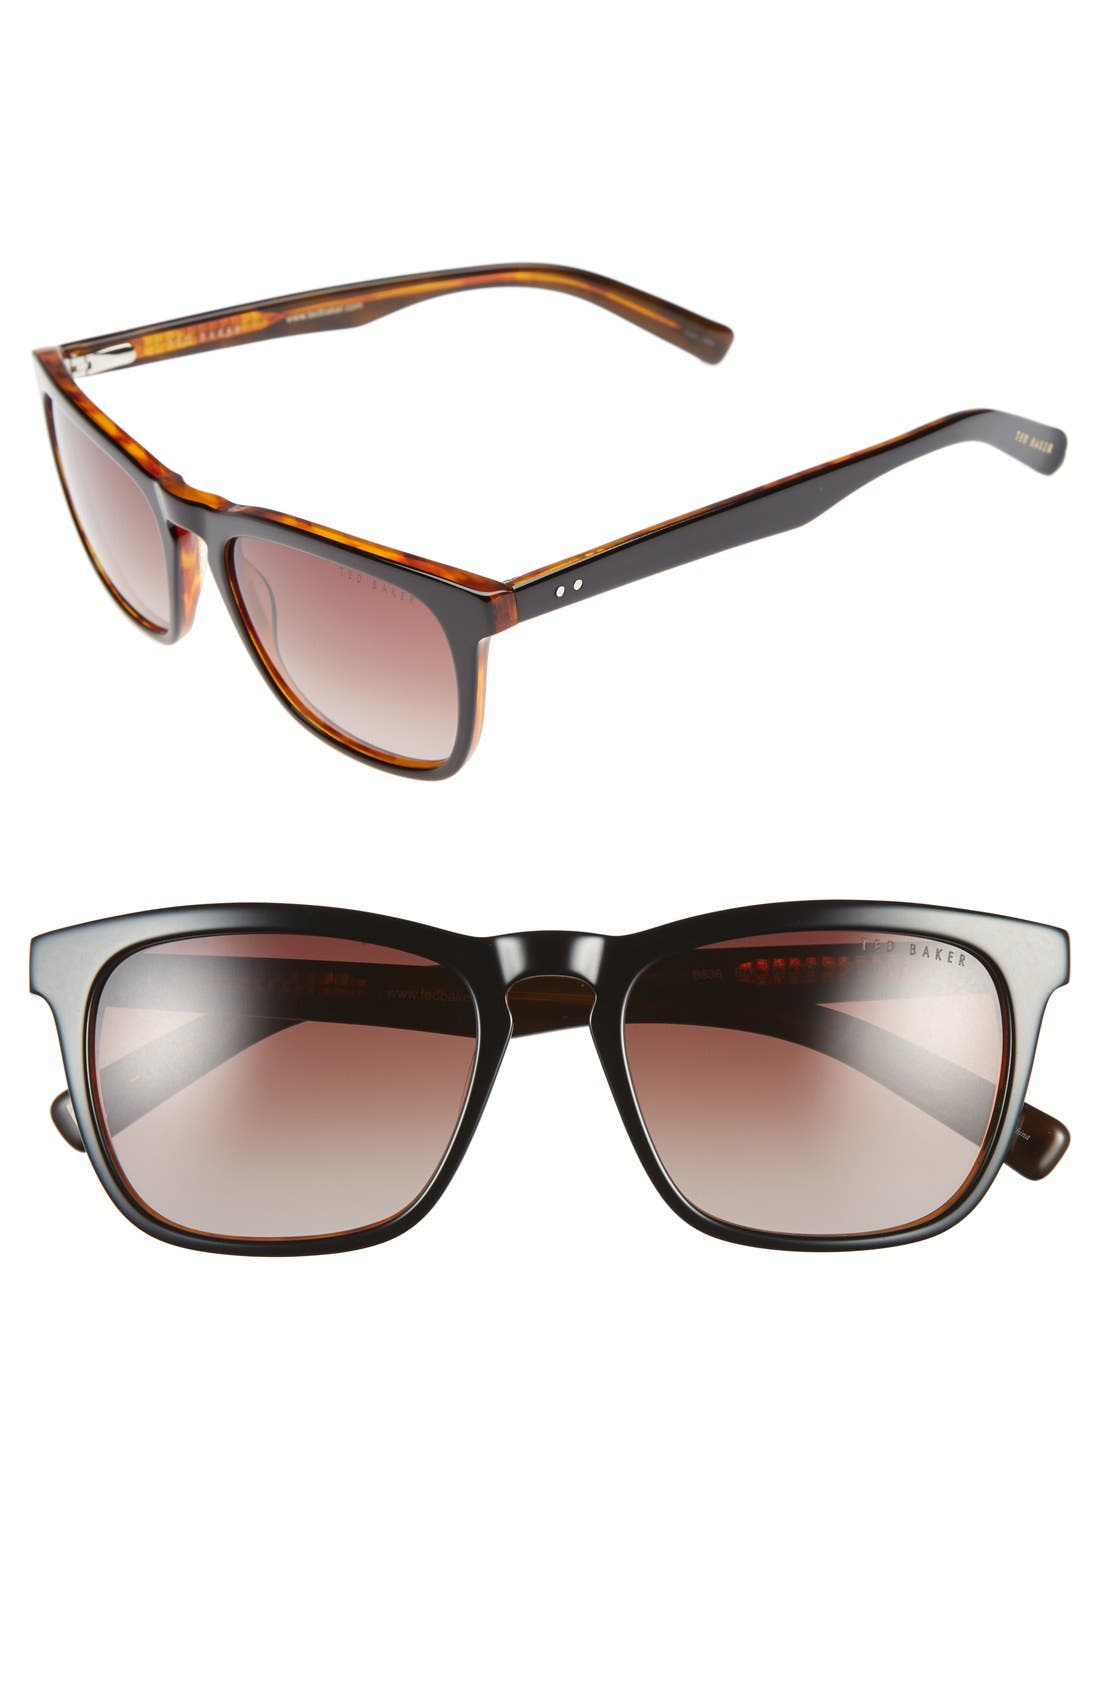 Main Image - Ted Baker London 53mm Sunglasses